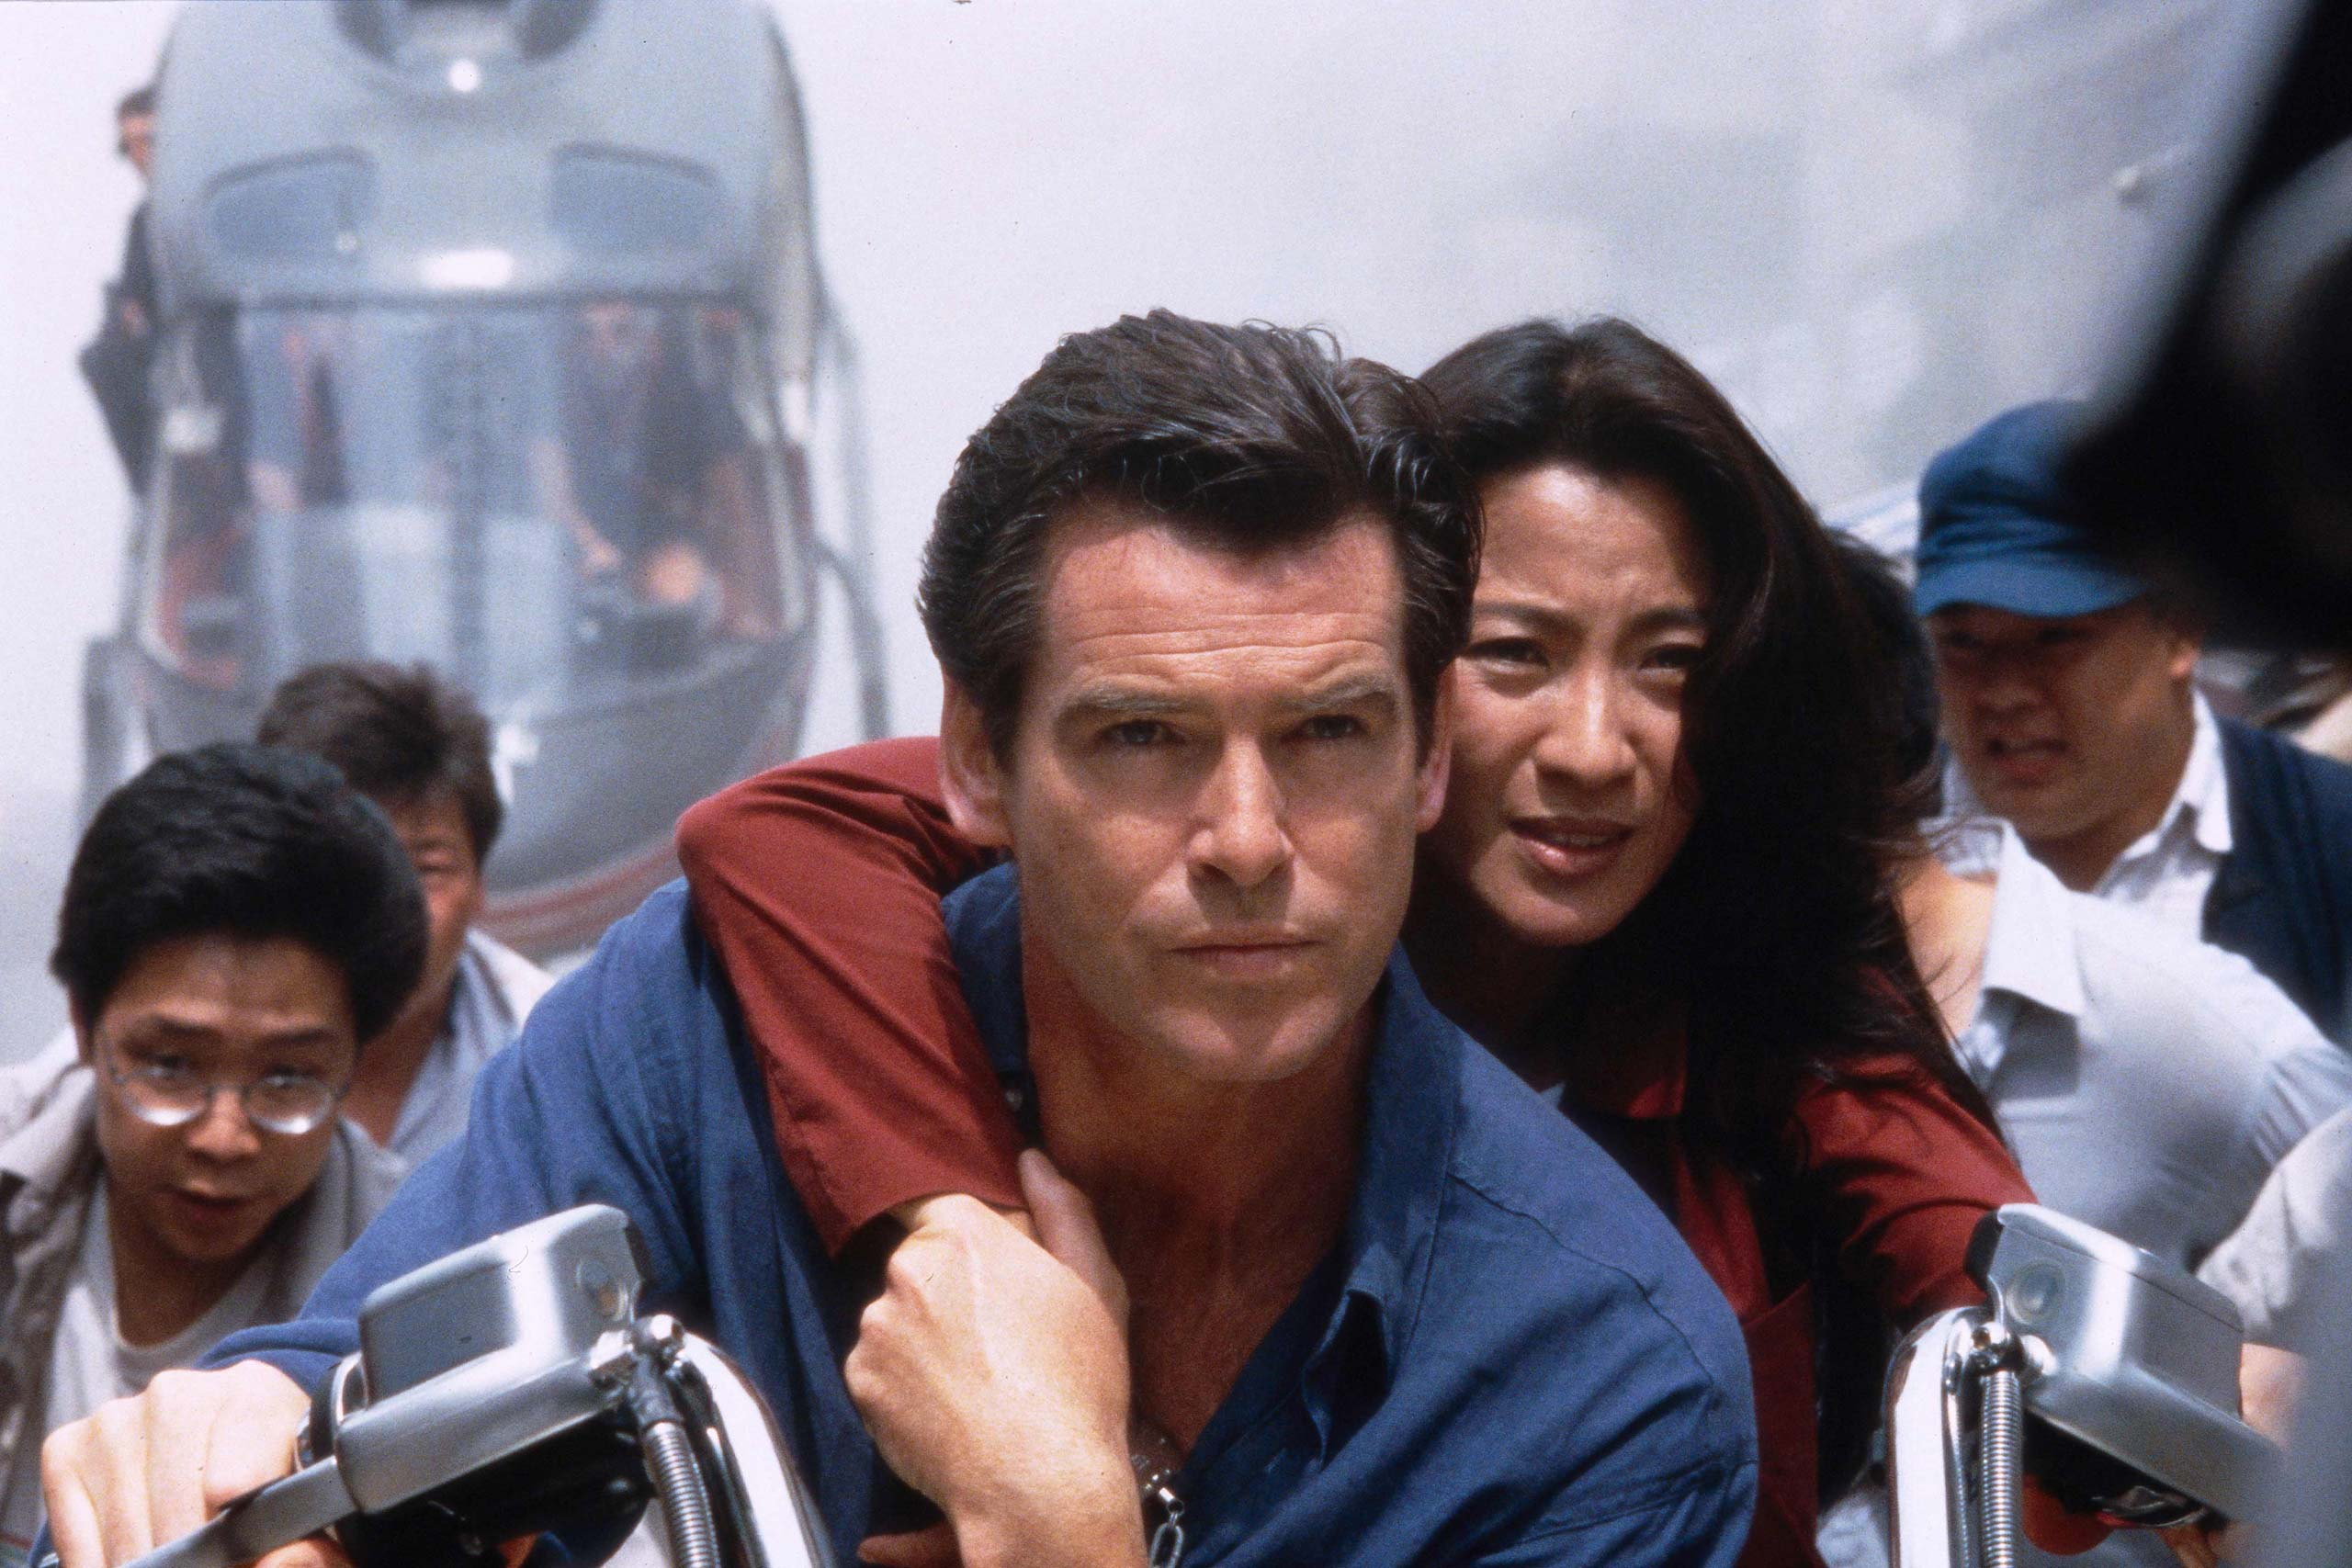 <strong><i>Tomorrow Never Dies</i> (1997) - Pierce Brosnan</strong>